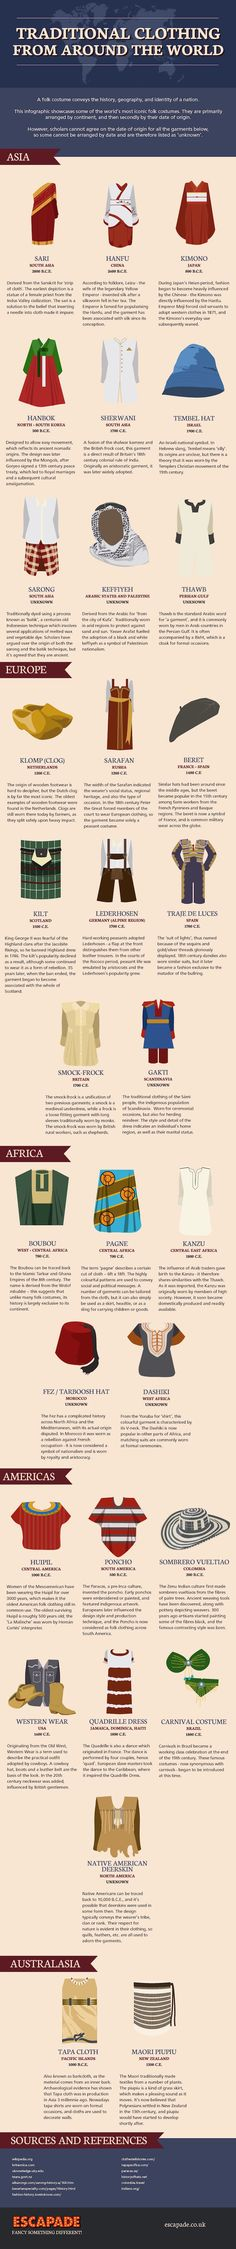 Traditional clothing from around the world